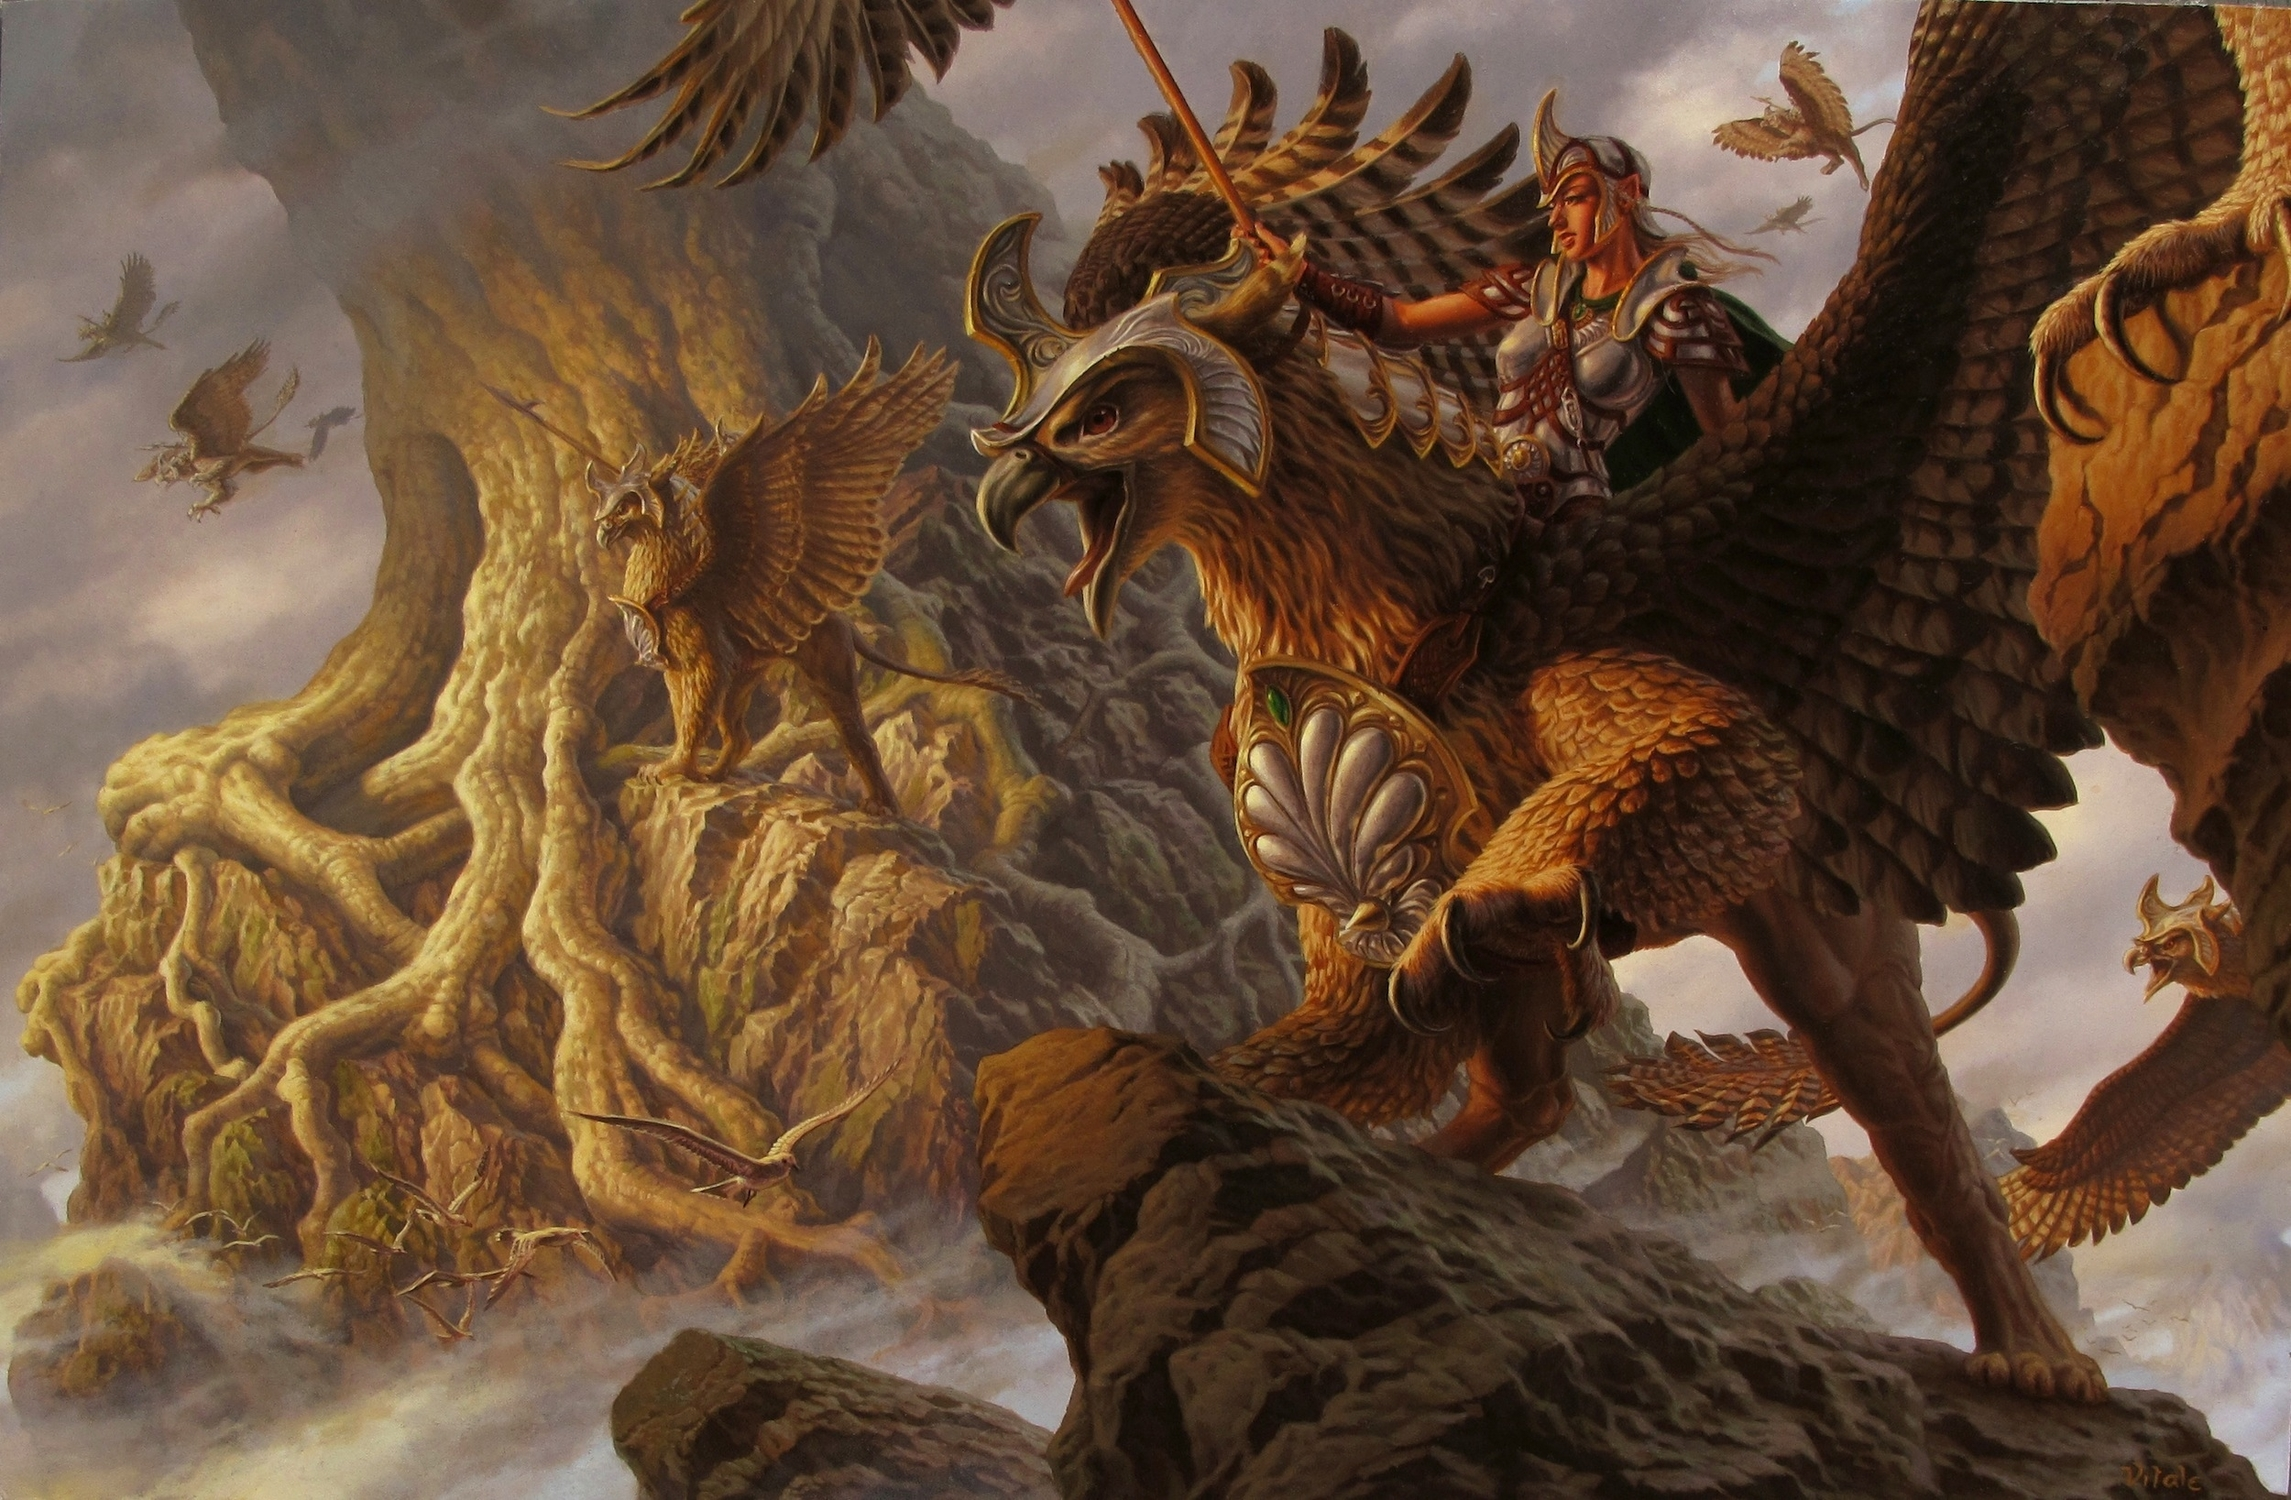 Torin's Quest Artwork by raoul vitale